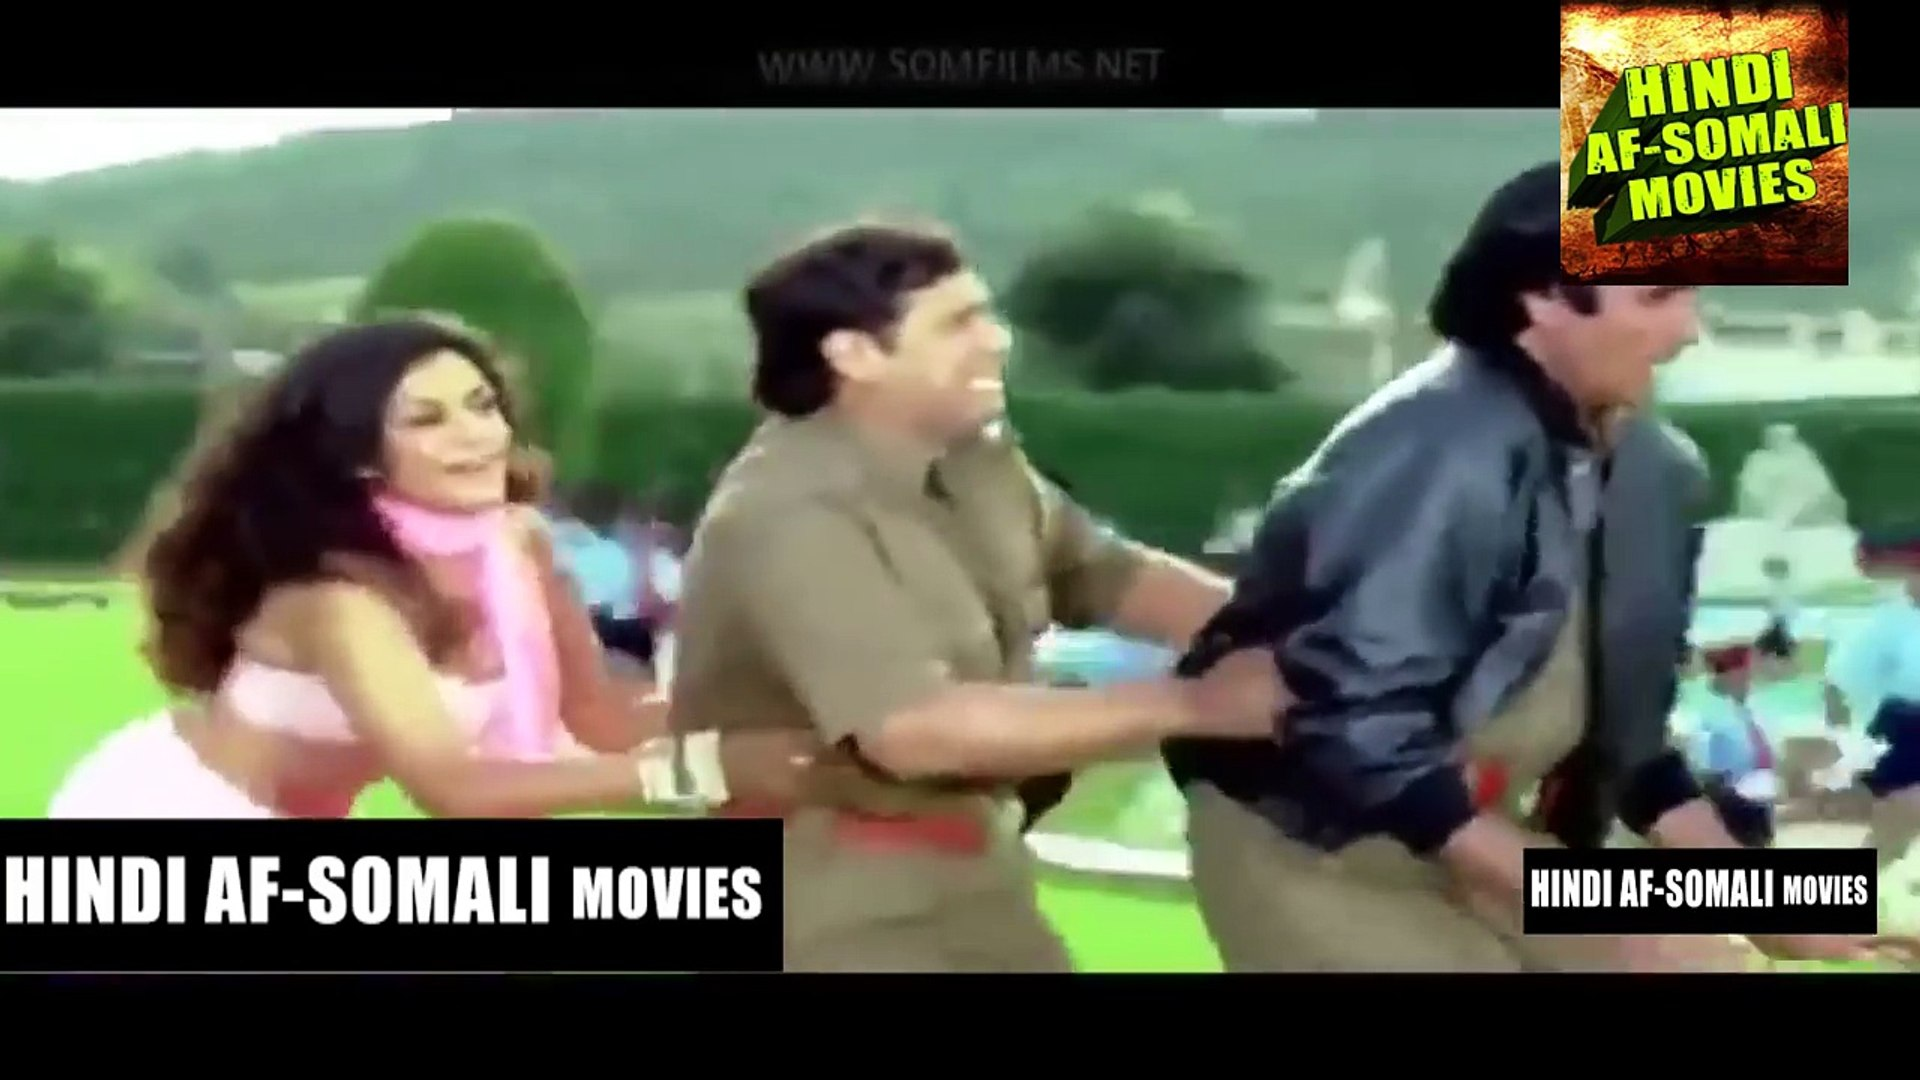 Bade Miyan Chote Miyan (1998) Hindi Af Somali Movie _ Amitabh Bachchan,  Govinda,Raveena Tandon,Movies 2017 tv series hd